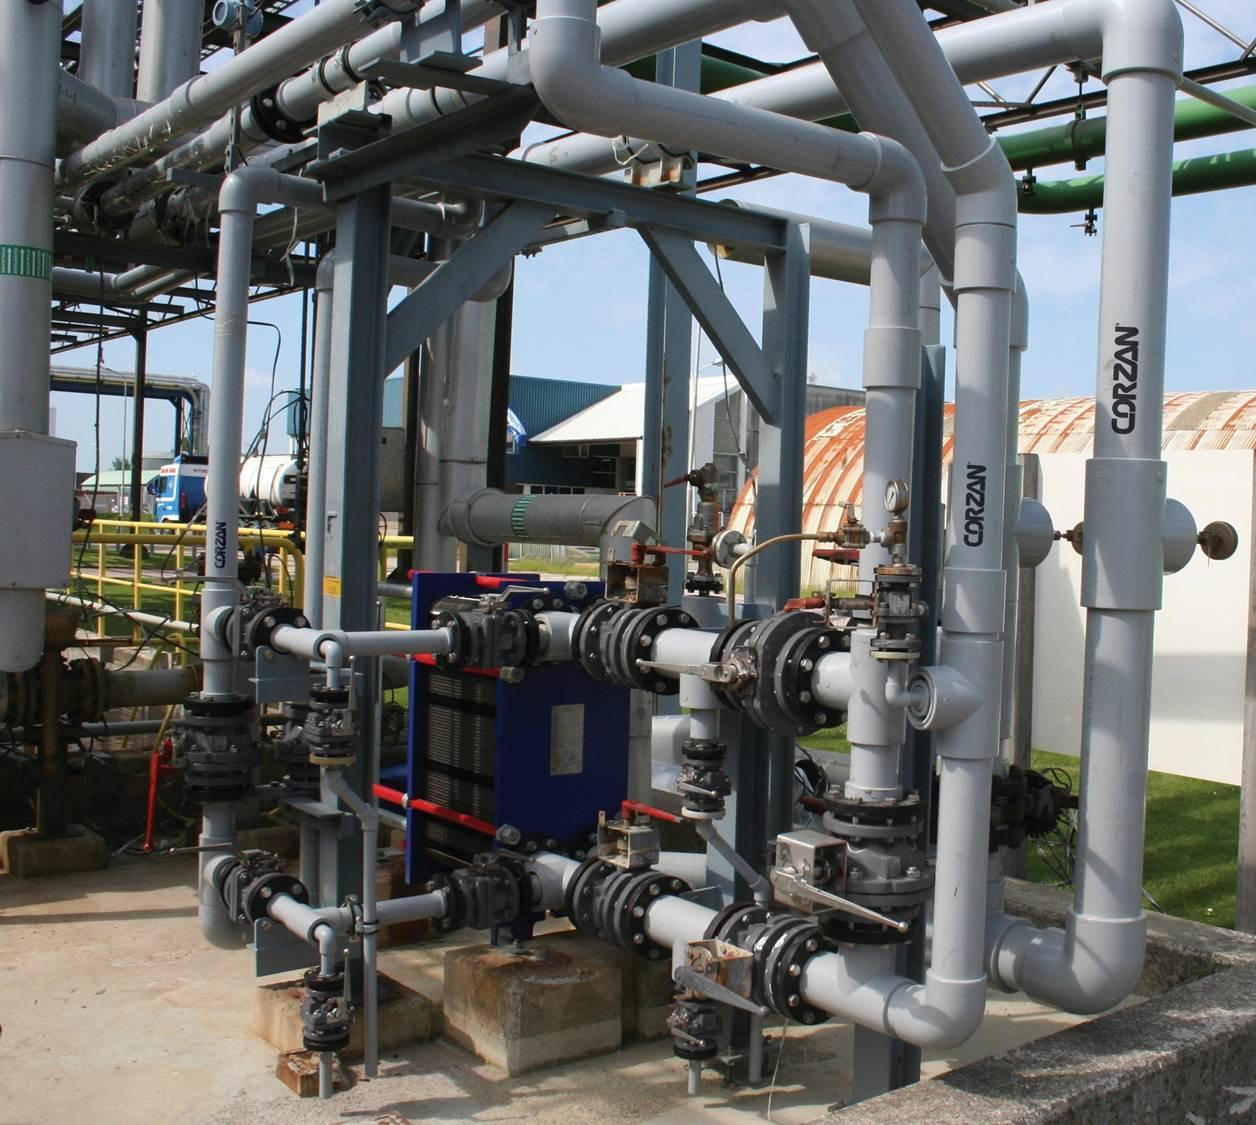 Due to its resilience, CPVC can also be used on pipes outside the plant building